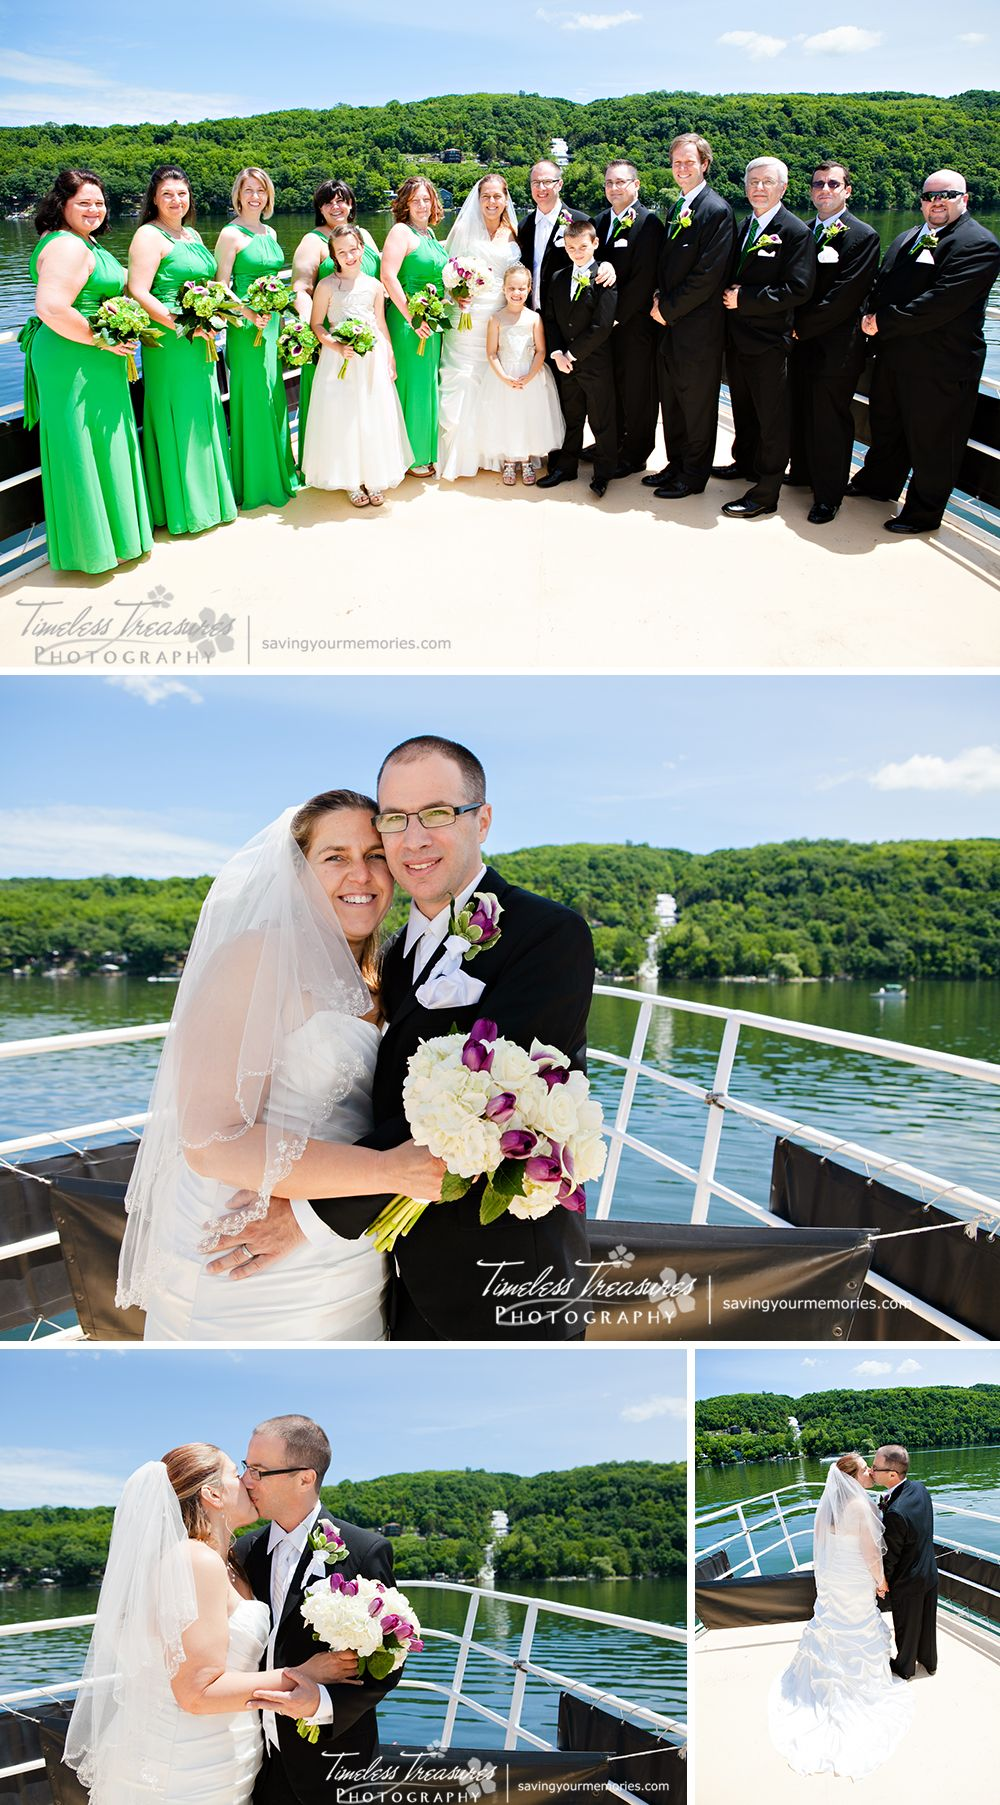 Bridal Party Portraits with the Waterfall. On the Seneca Legacy in Watkins Glen New York | All Images Copyright © 2014 Timeless Treasures Photography | www.savingyourmemories.com